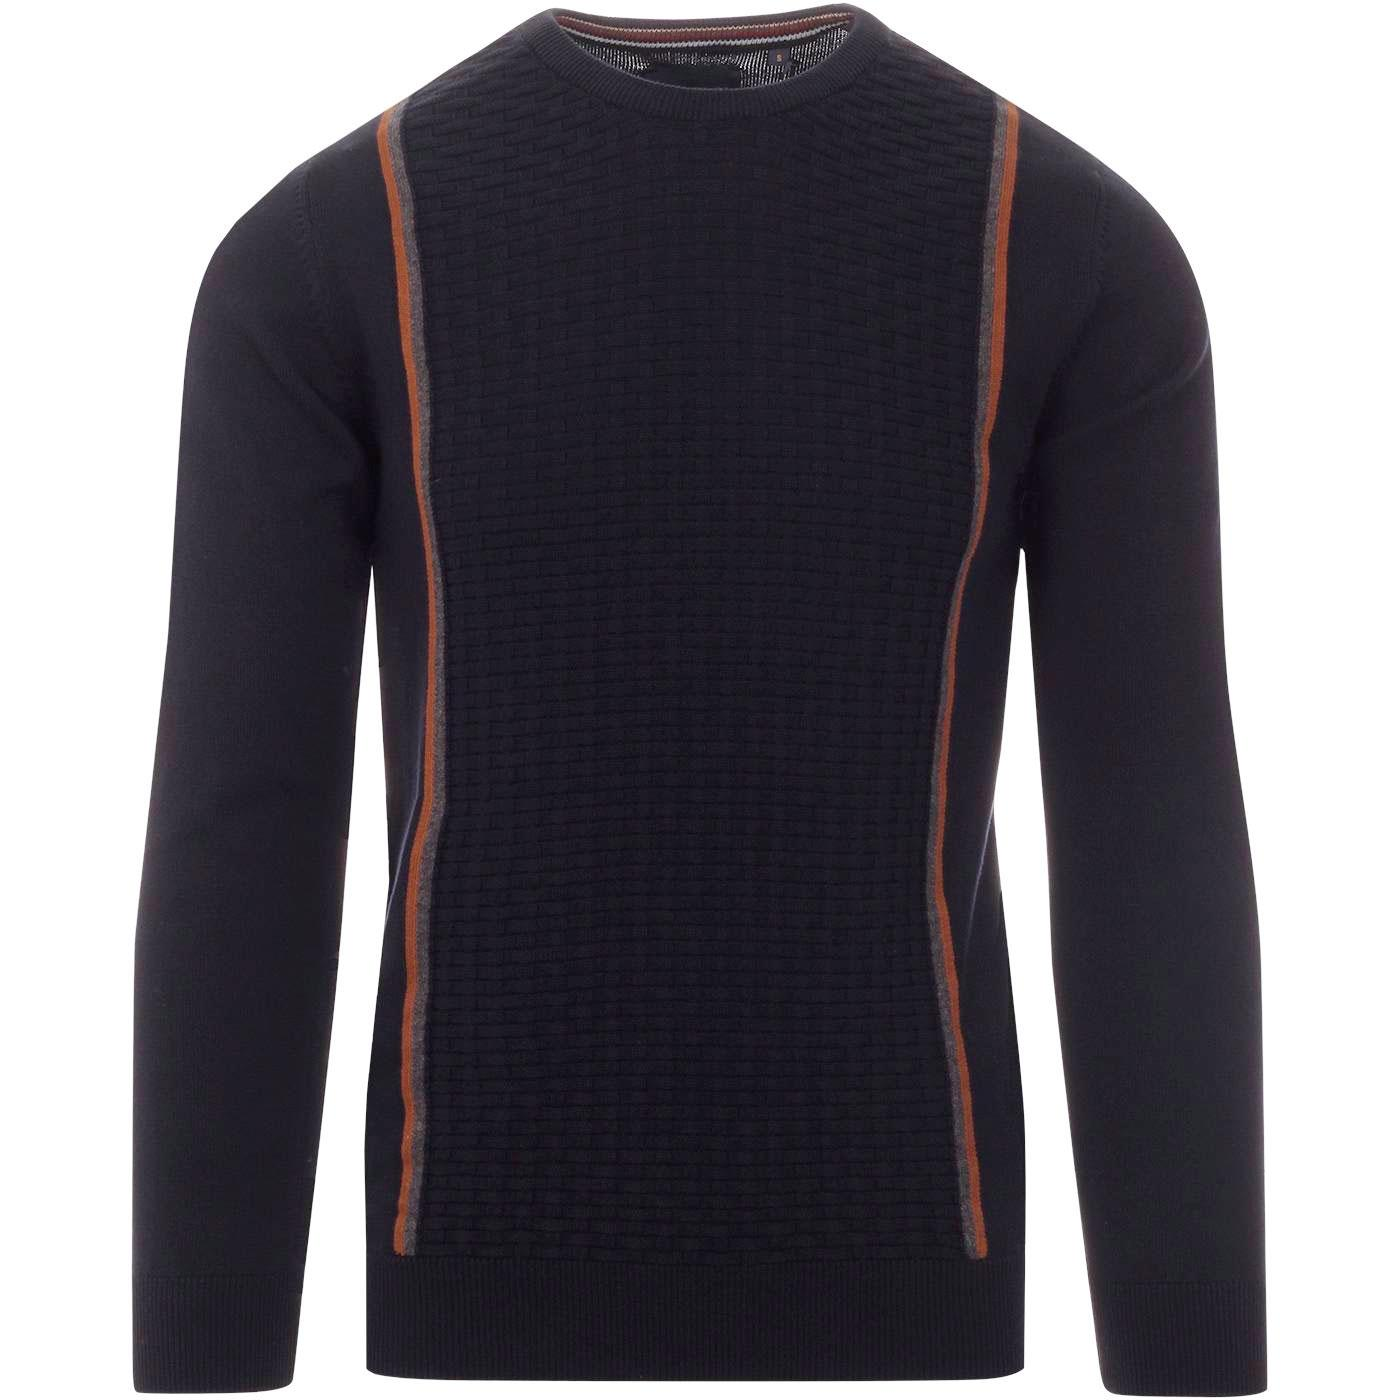 GUIDE LONDON Retro Mod Basket Weave Stripe Jumper